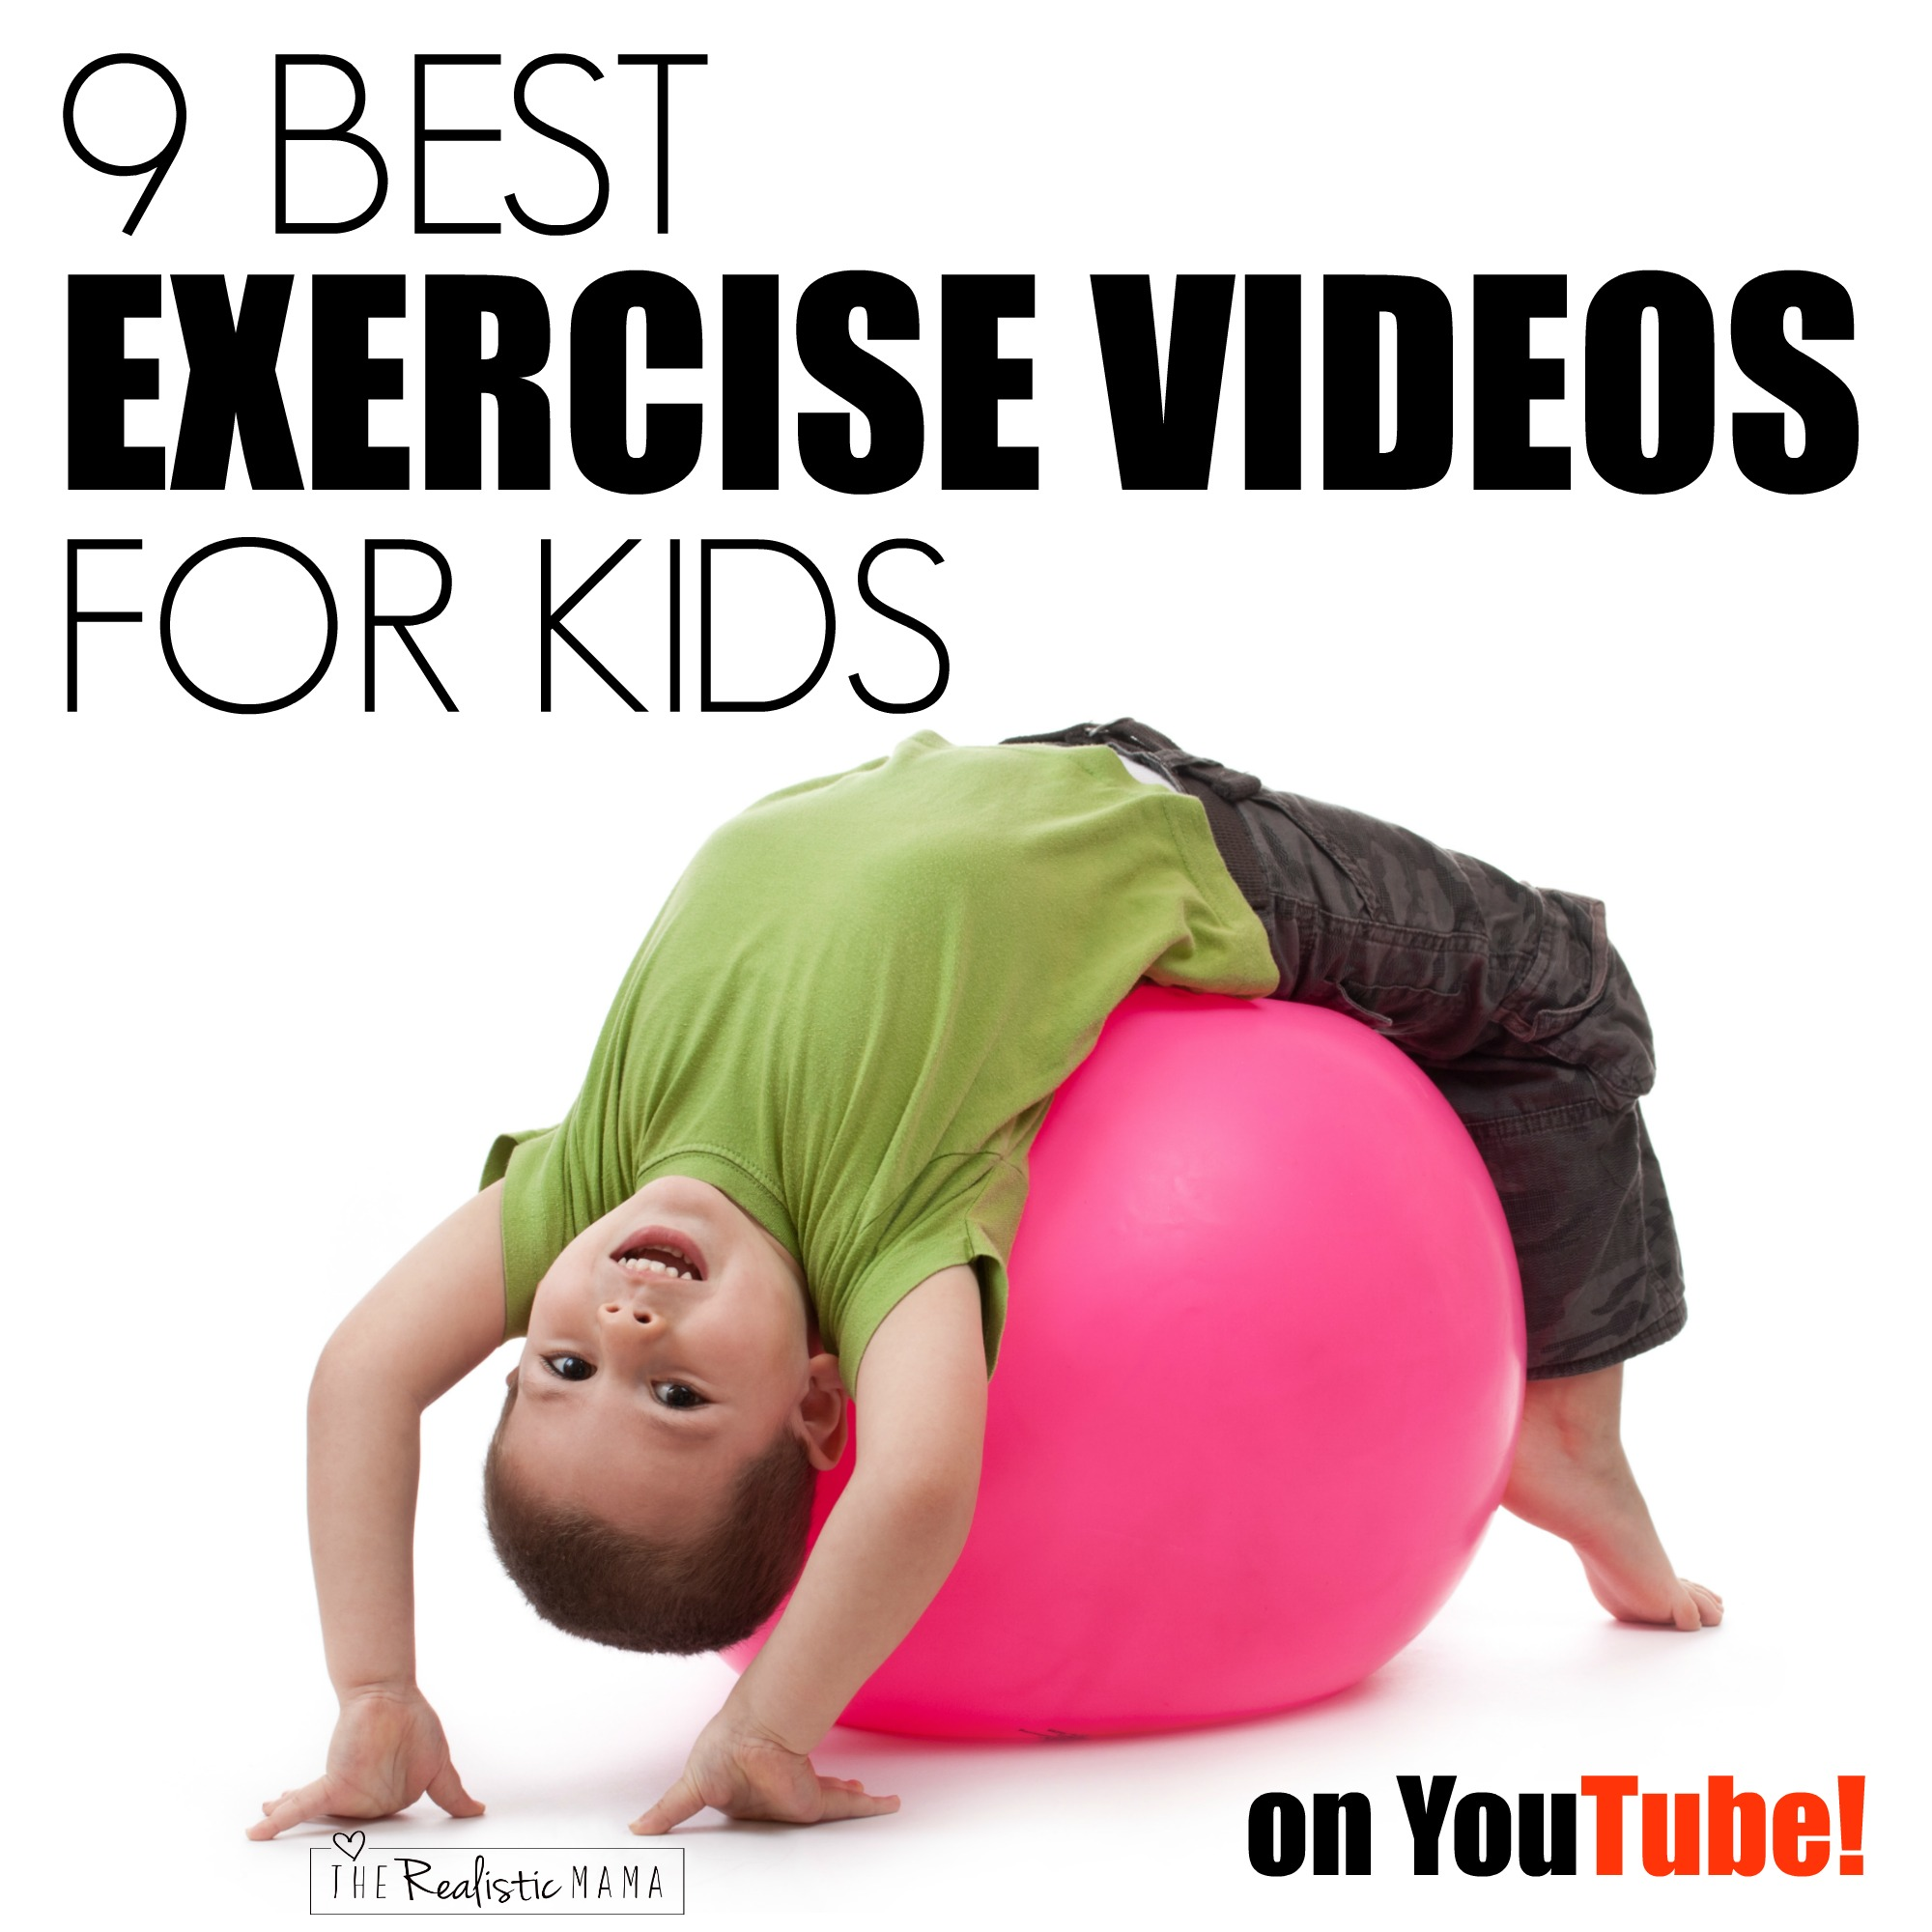 9 Best Exercise Videos for Kids on YouTube!